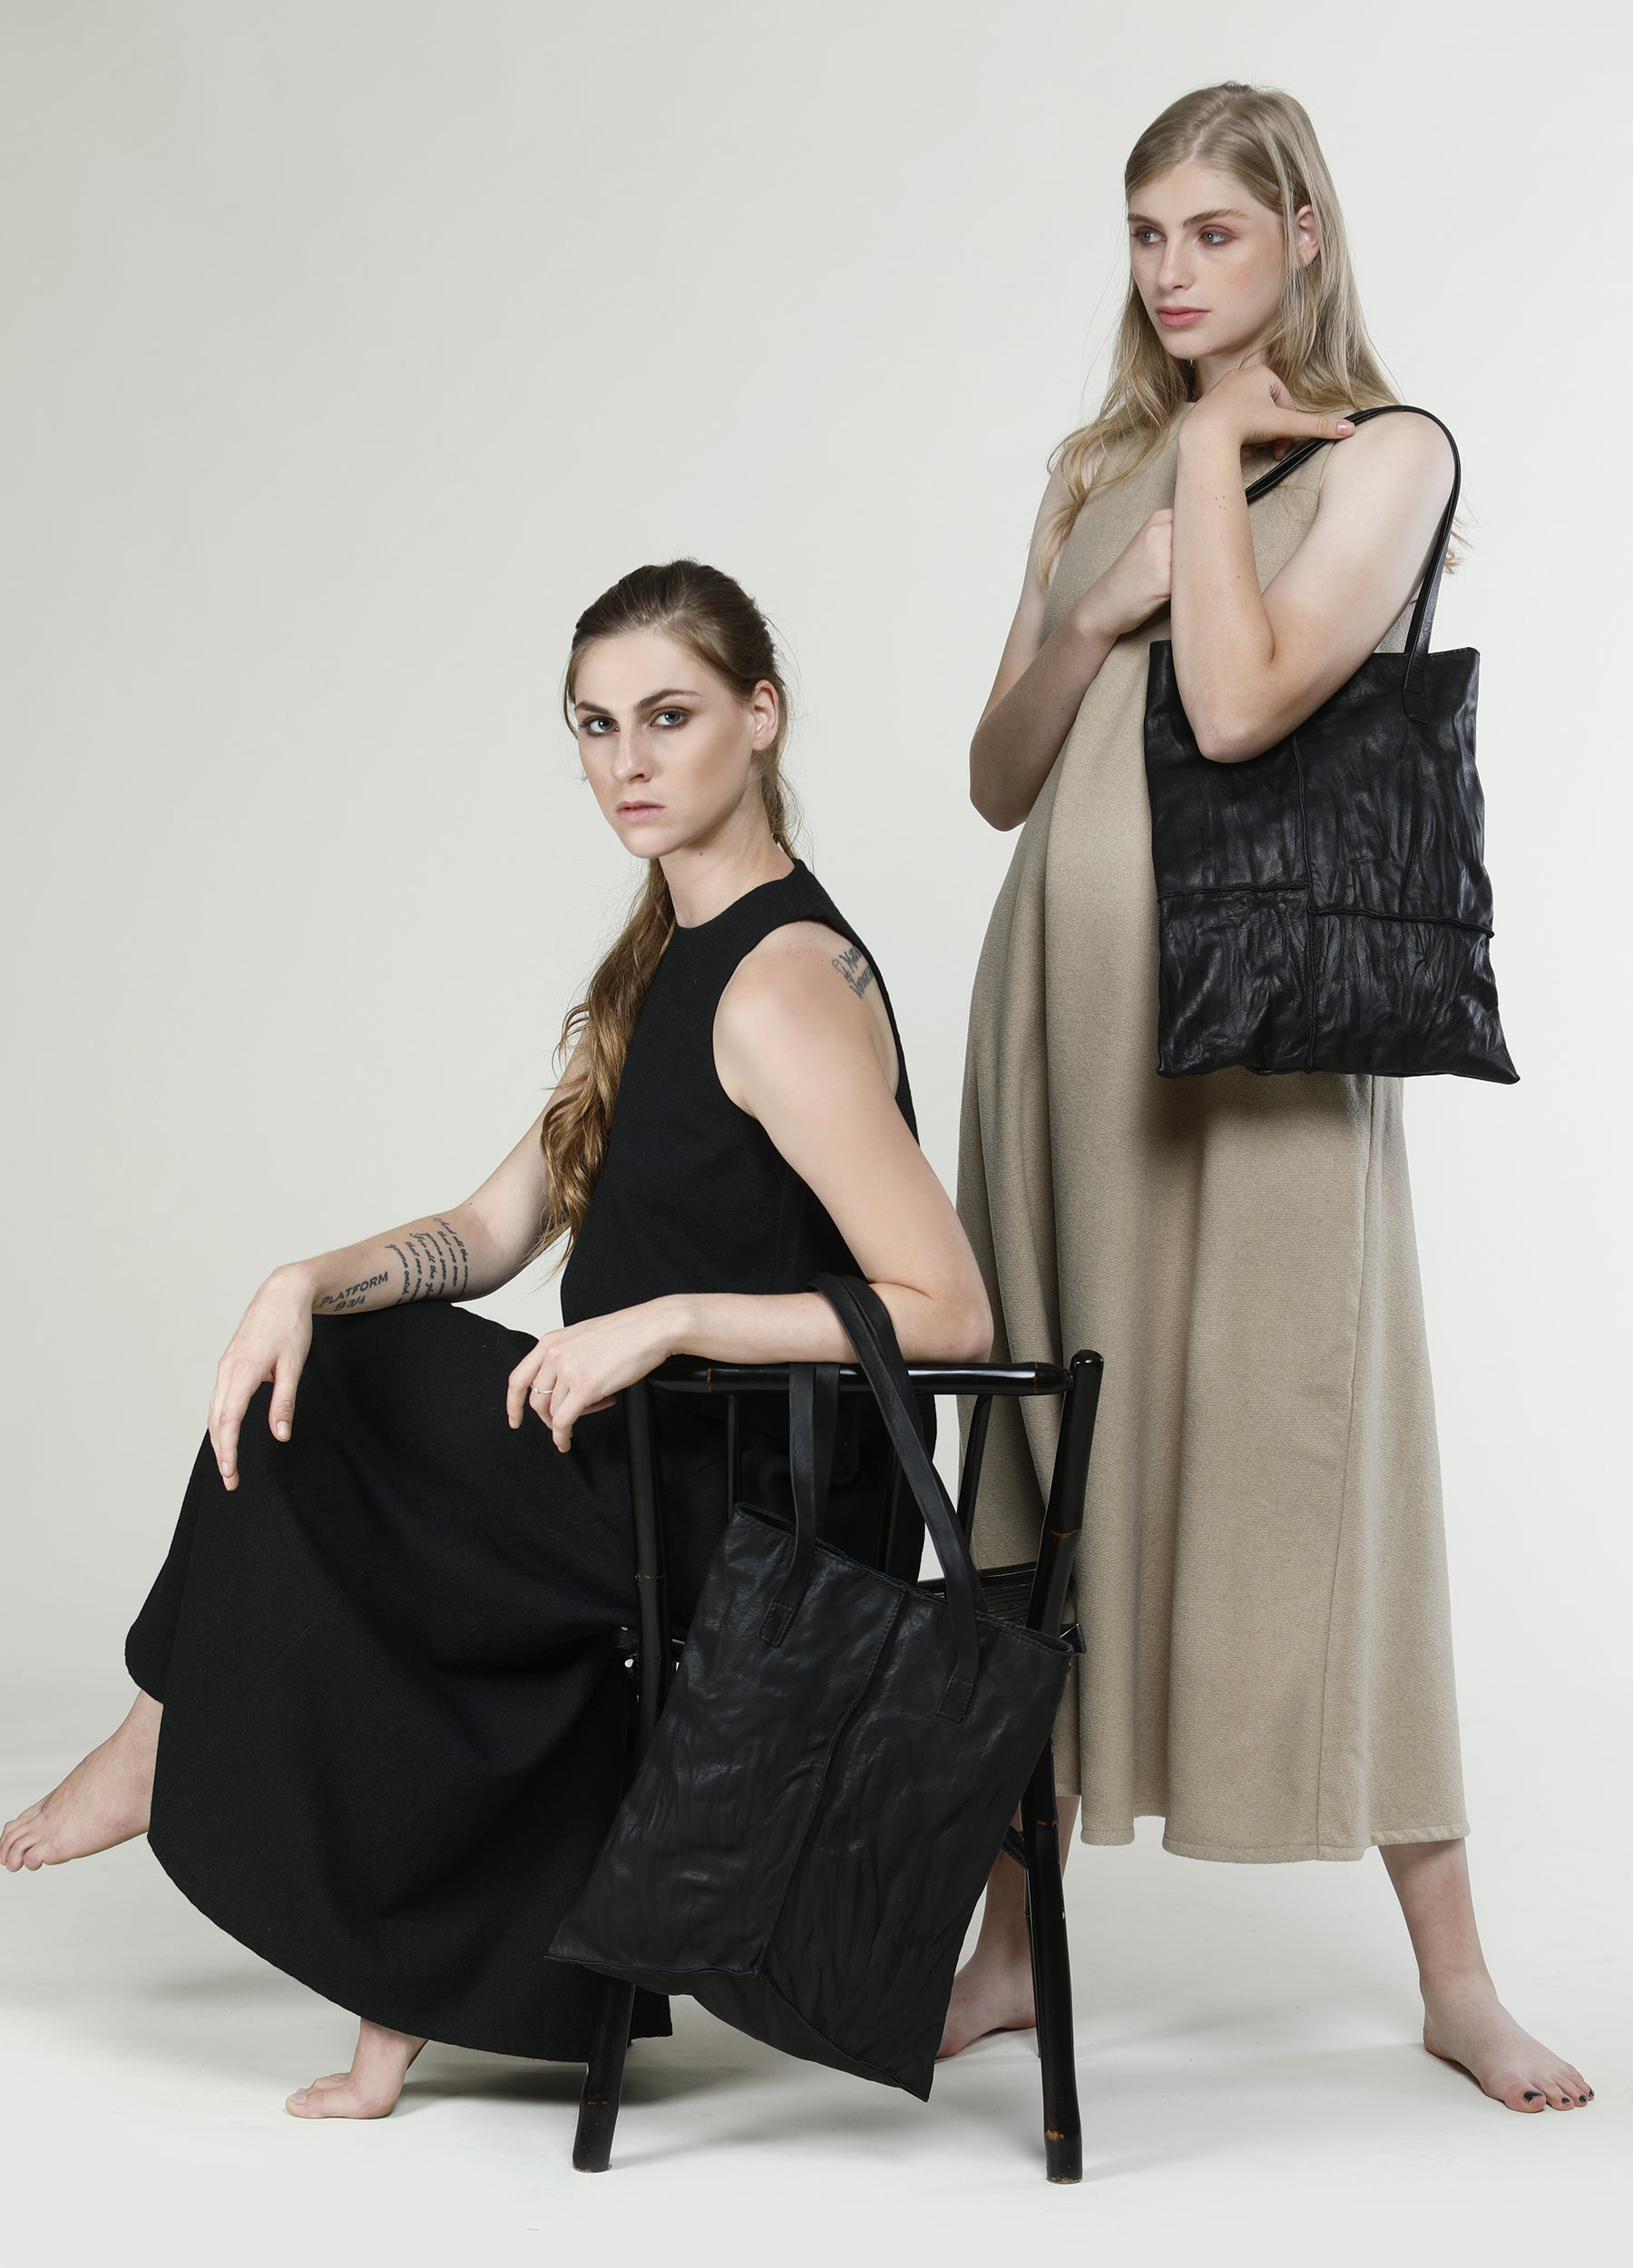 Black Leather Square Stitches Tote Bag, Best Craftsmanship and, Minimalist Geometric